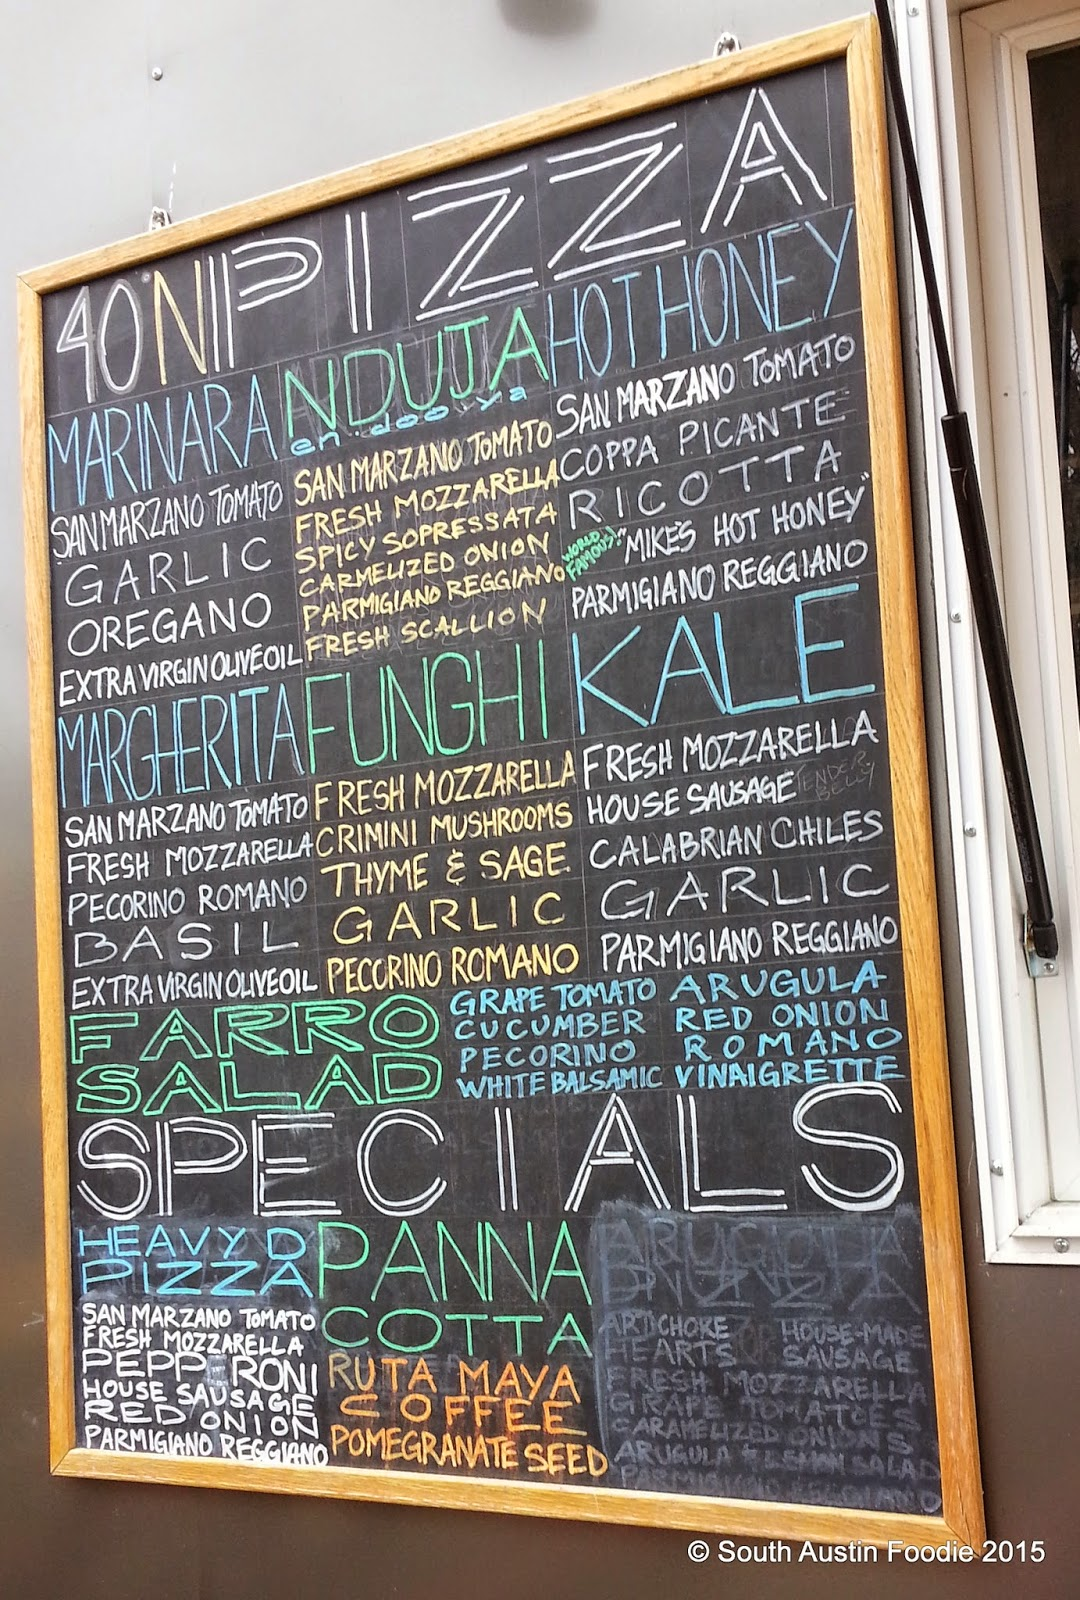 40 North pizza menu board